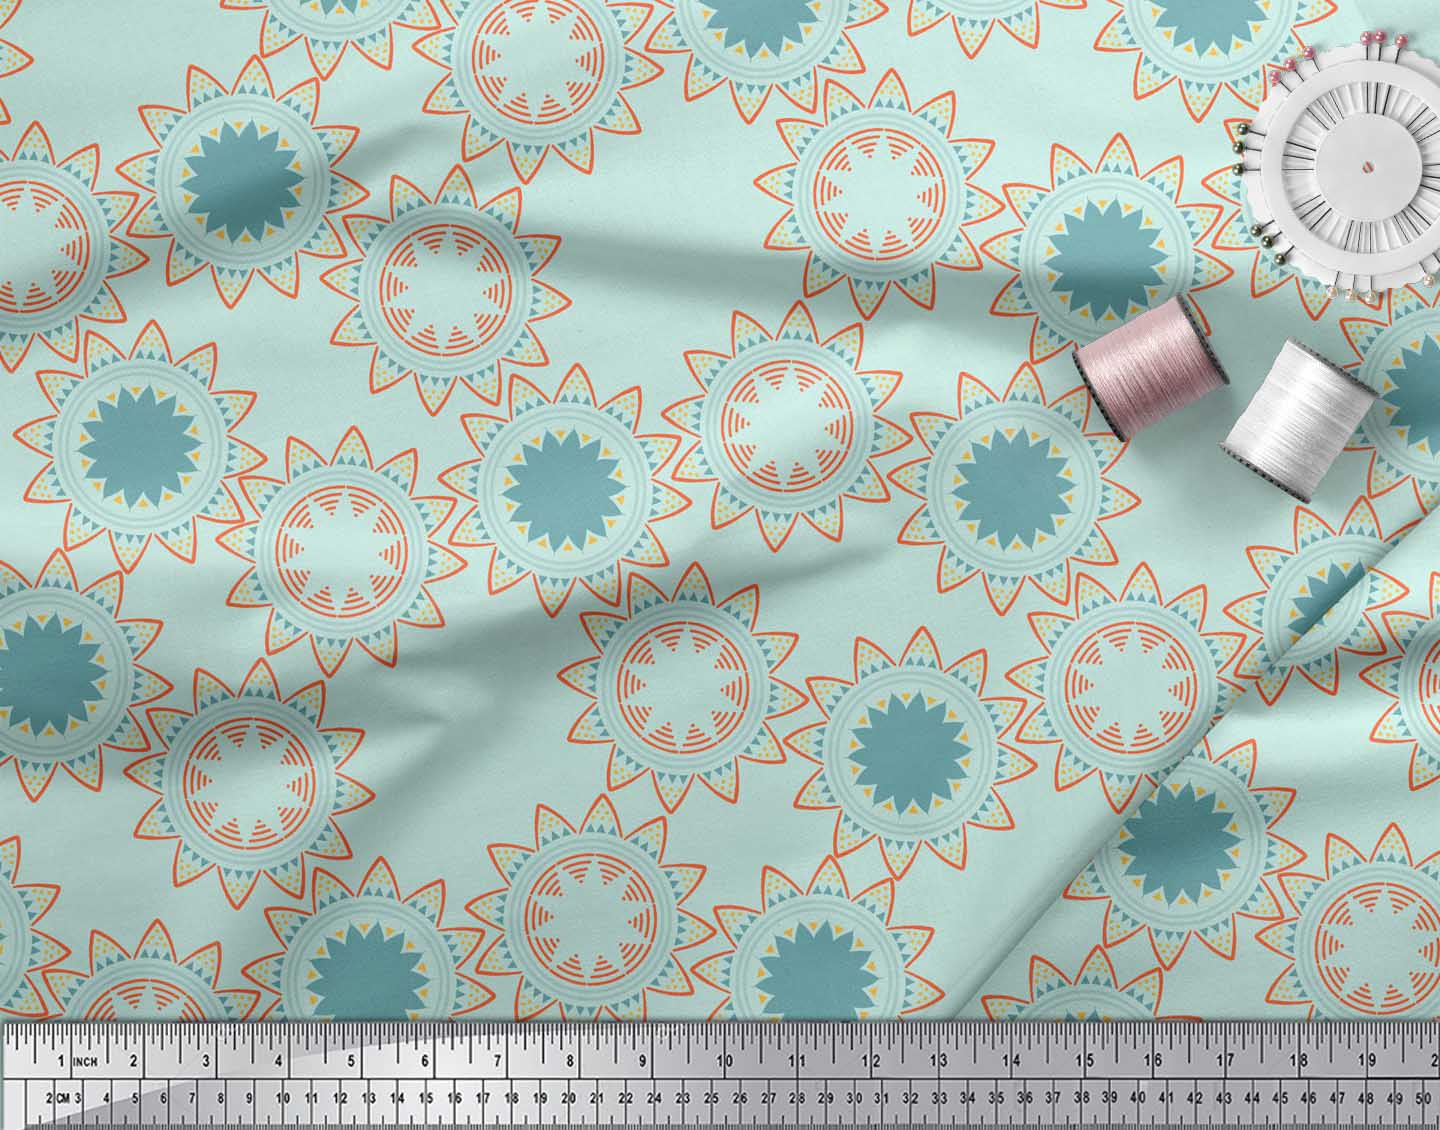 Soimoi-Green-Cotton-Poplin-Fabric-Sun-Mandala-Print-Sewing-Fabric-ABS thumbnail 4